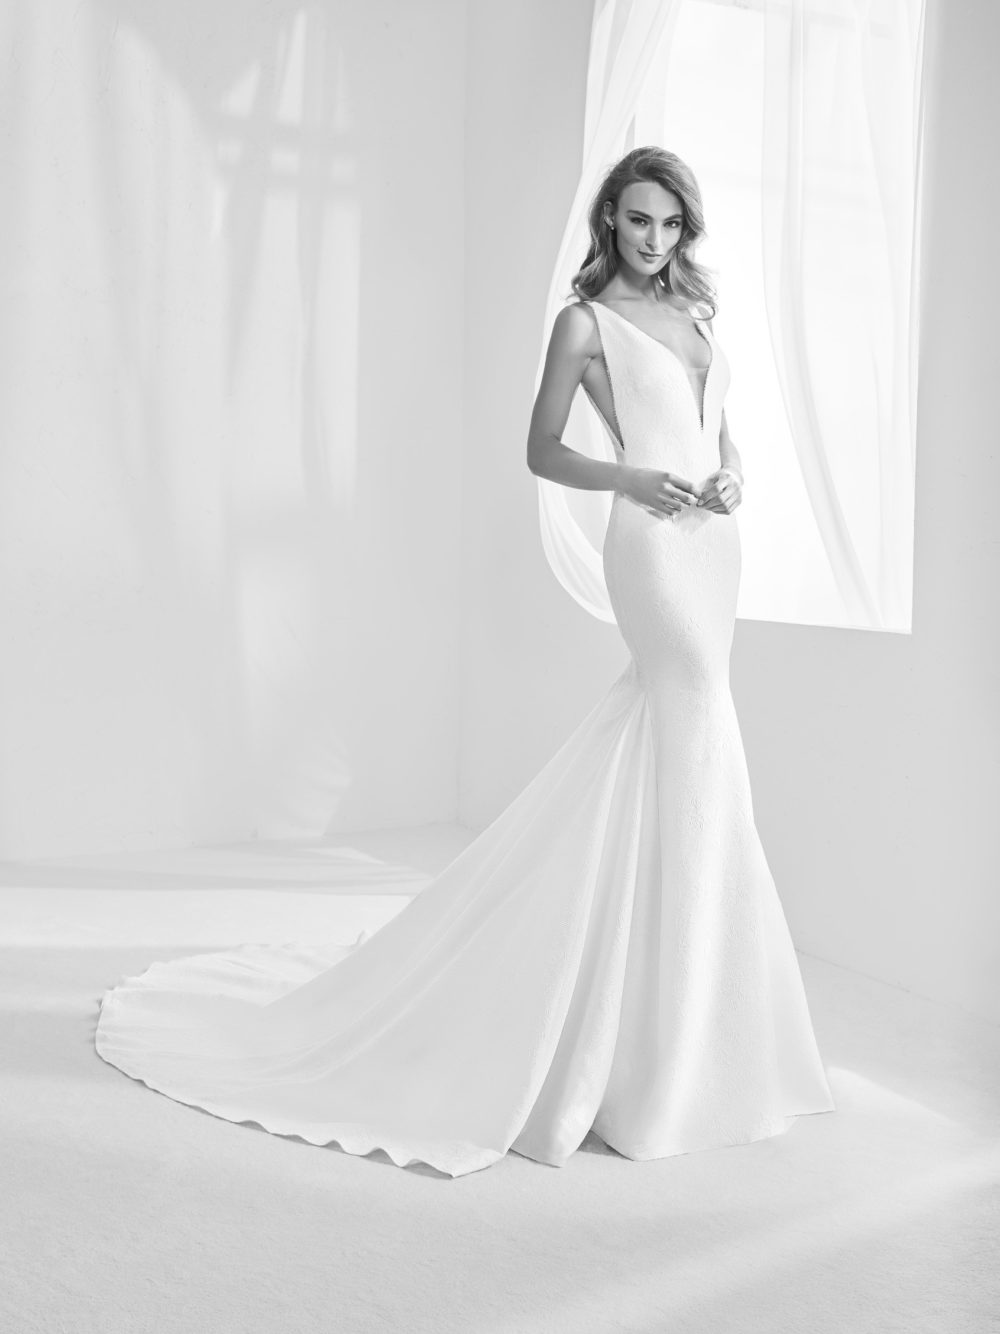 Pronovias Racimo Wedding Gown Dress 2020 Atelier Collection black and white